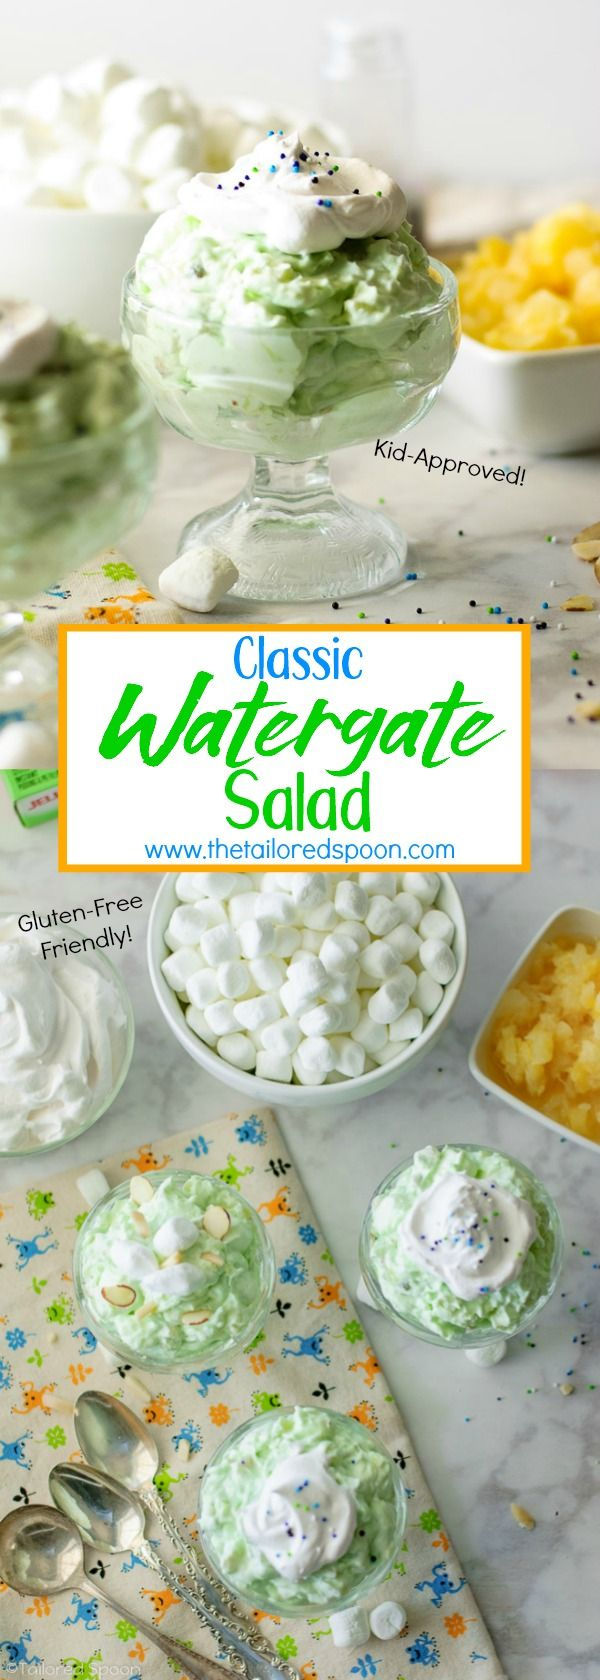 Pineapple Marshmallow Salad Cool Whip